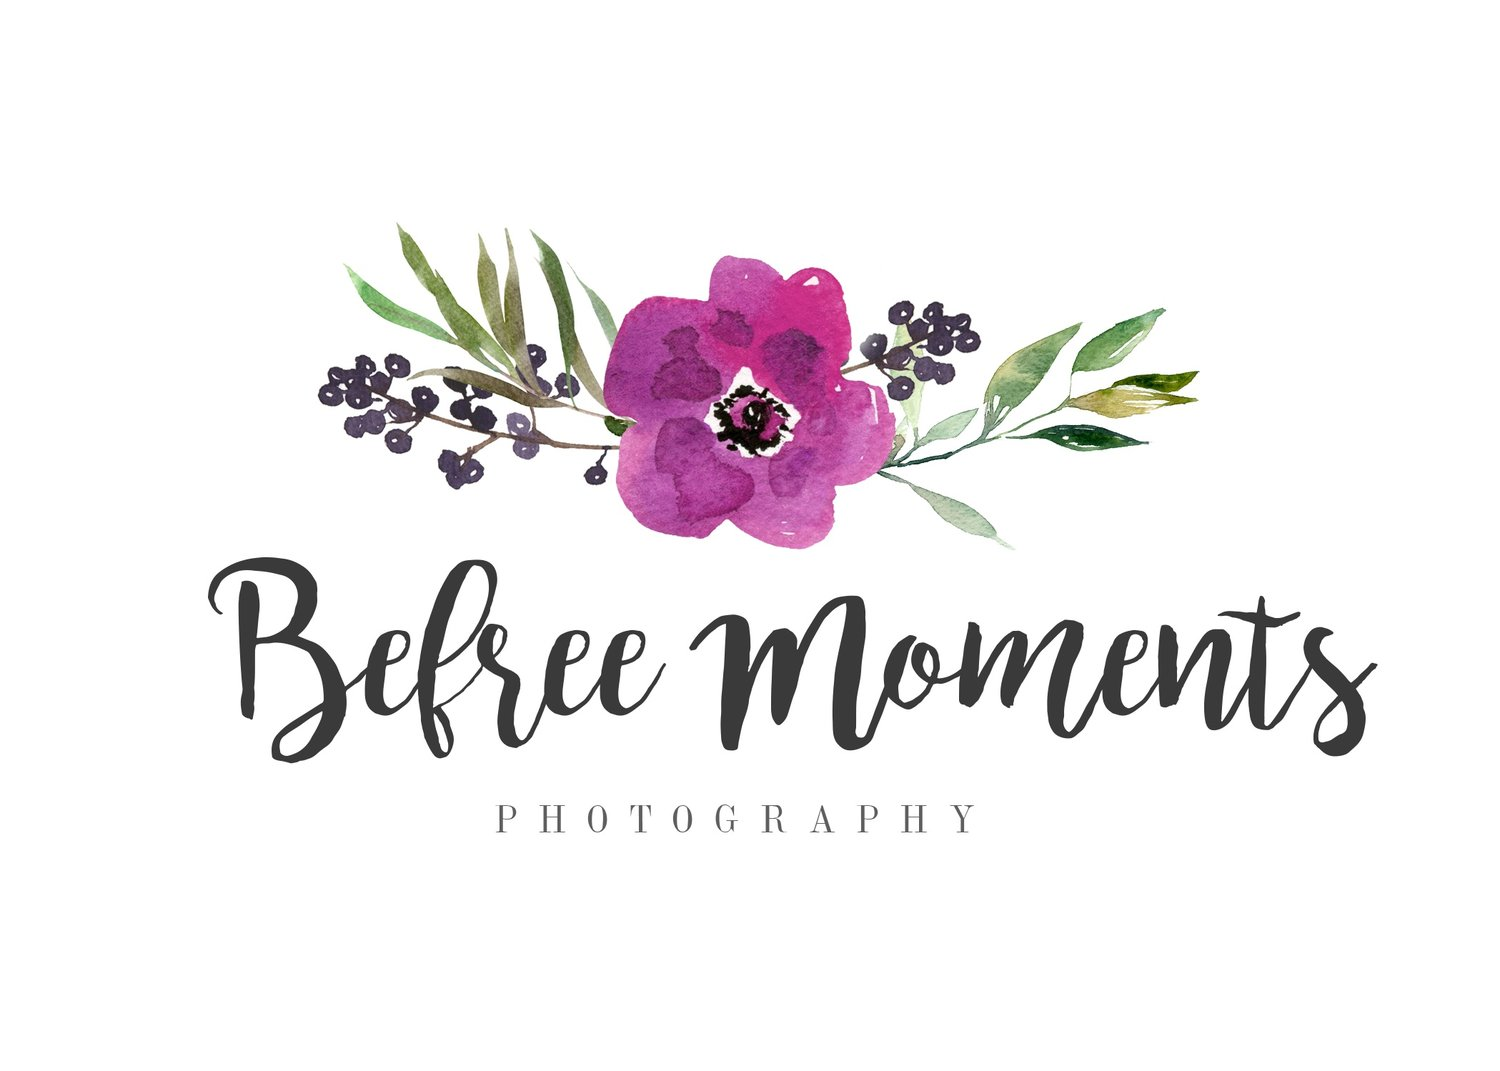 Befree Moments Photography